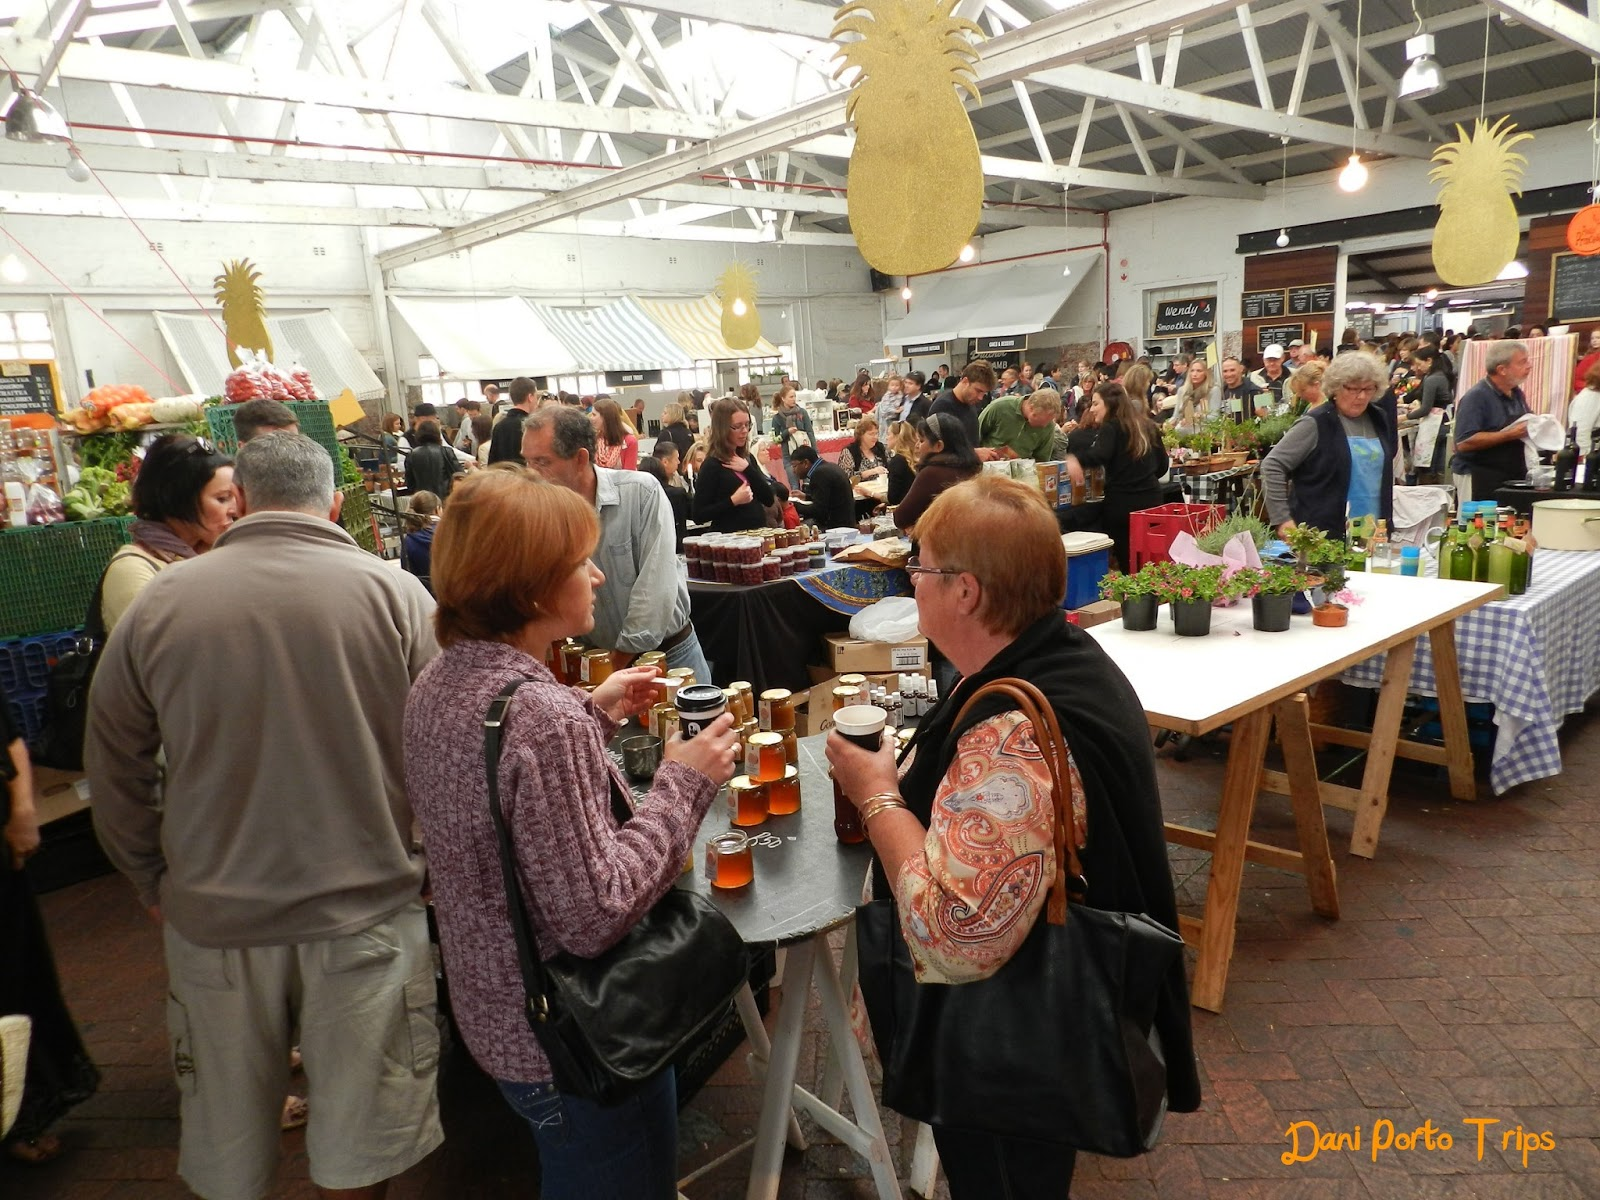 The Old Biscuit Mill, cape town, cidade do cabo, feira, market, gastronomia,